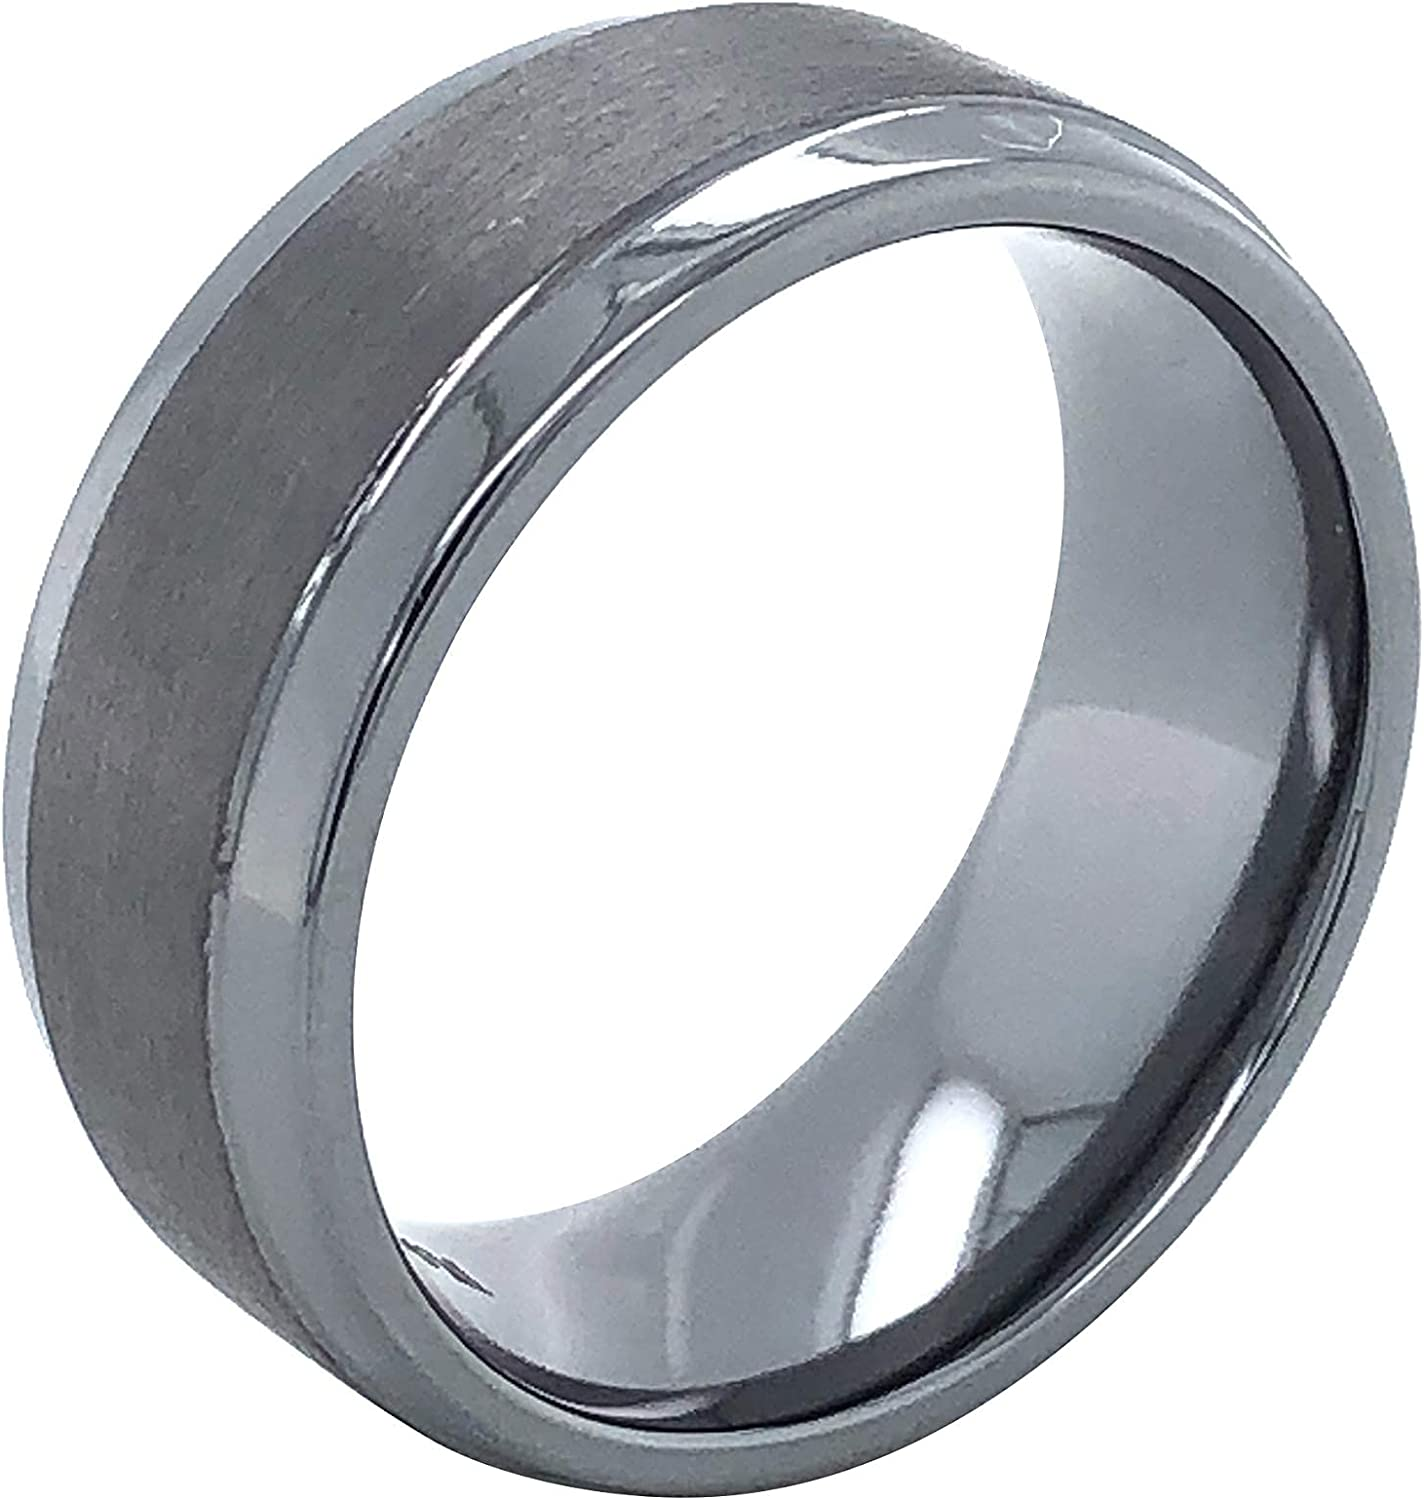 Tantalum 8mm Wide Dual Finish Flat Profile Men's Comfort-Fit Wedding Band Ring with Brushed Matte Center and High-Polish Edges